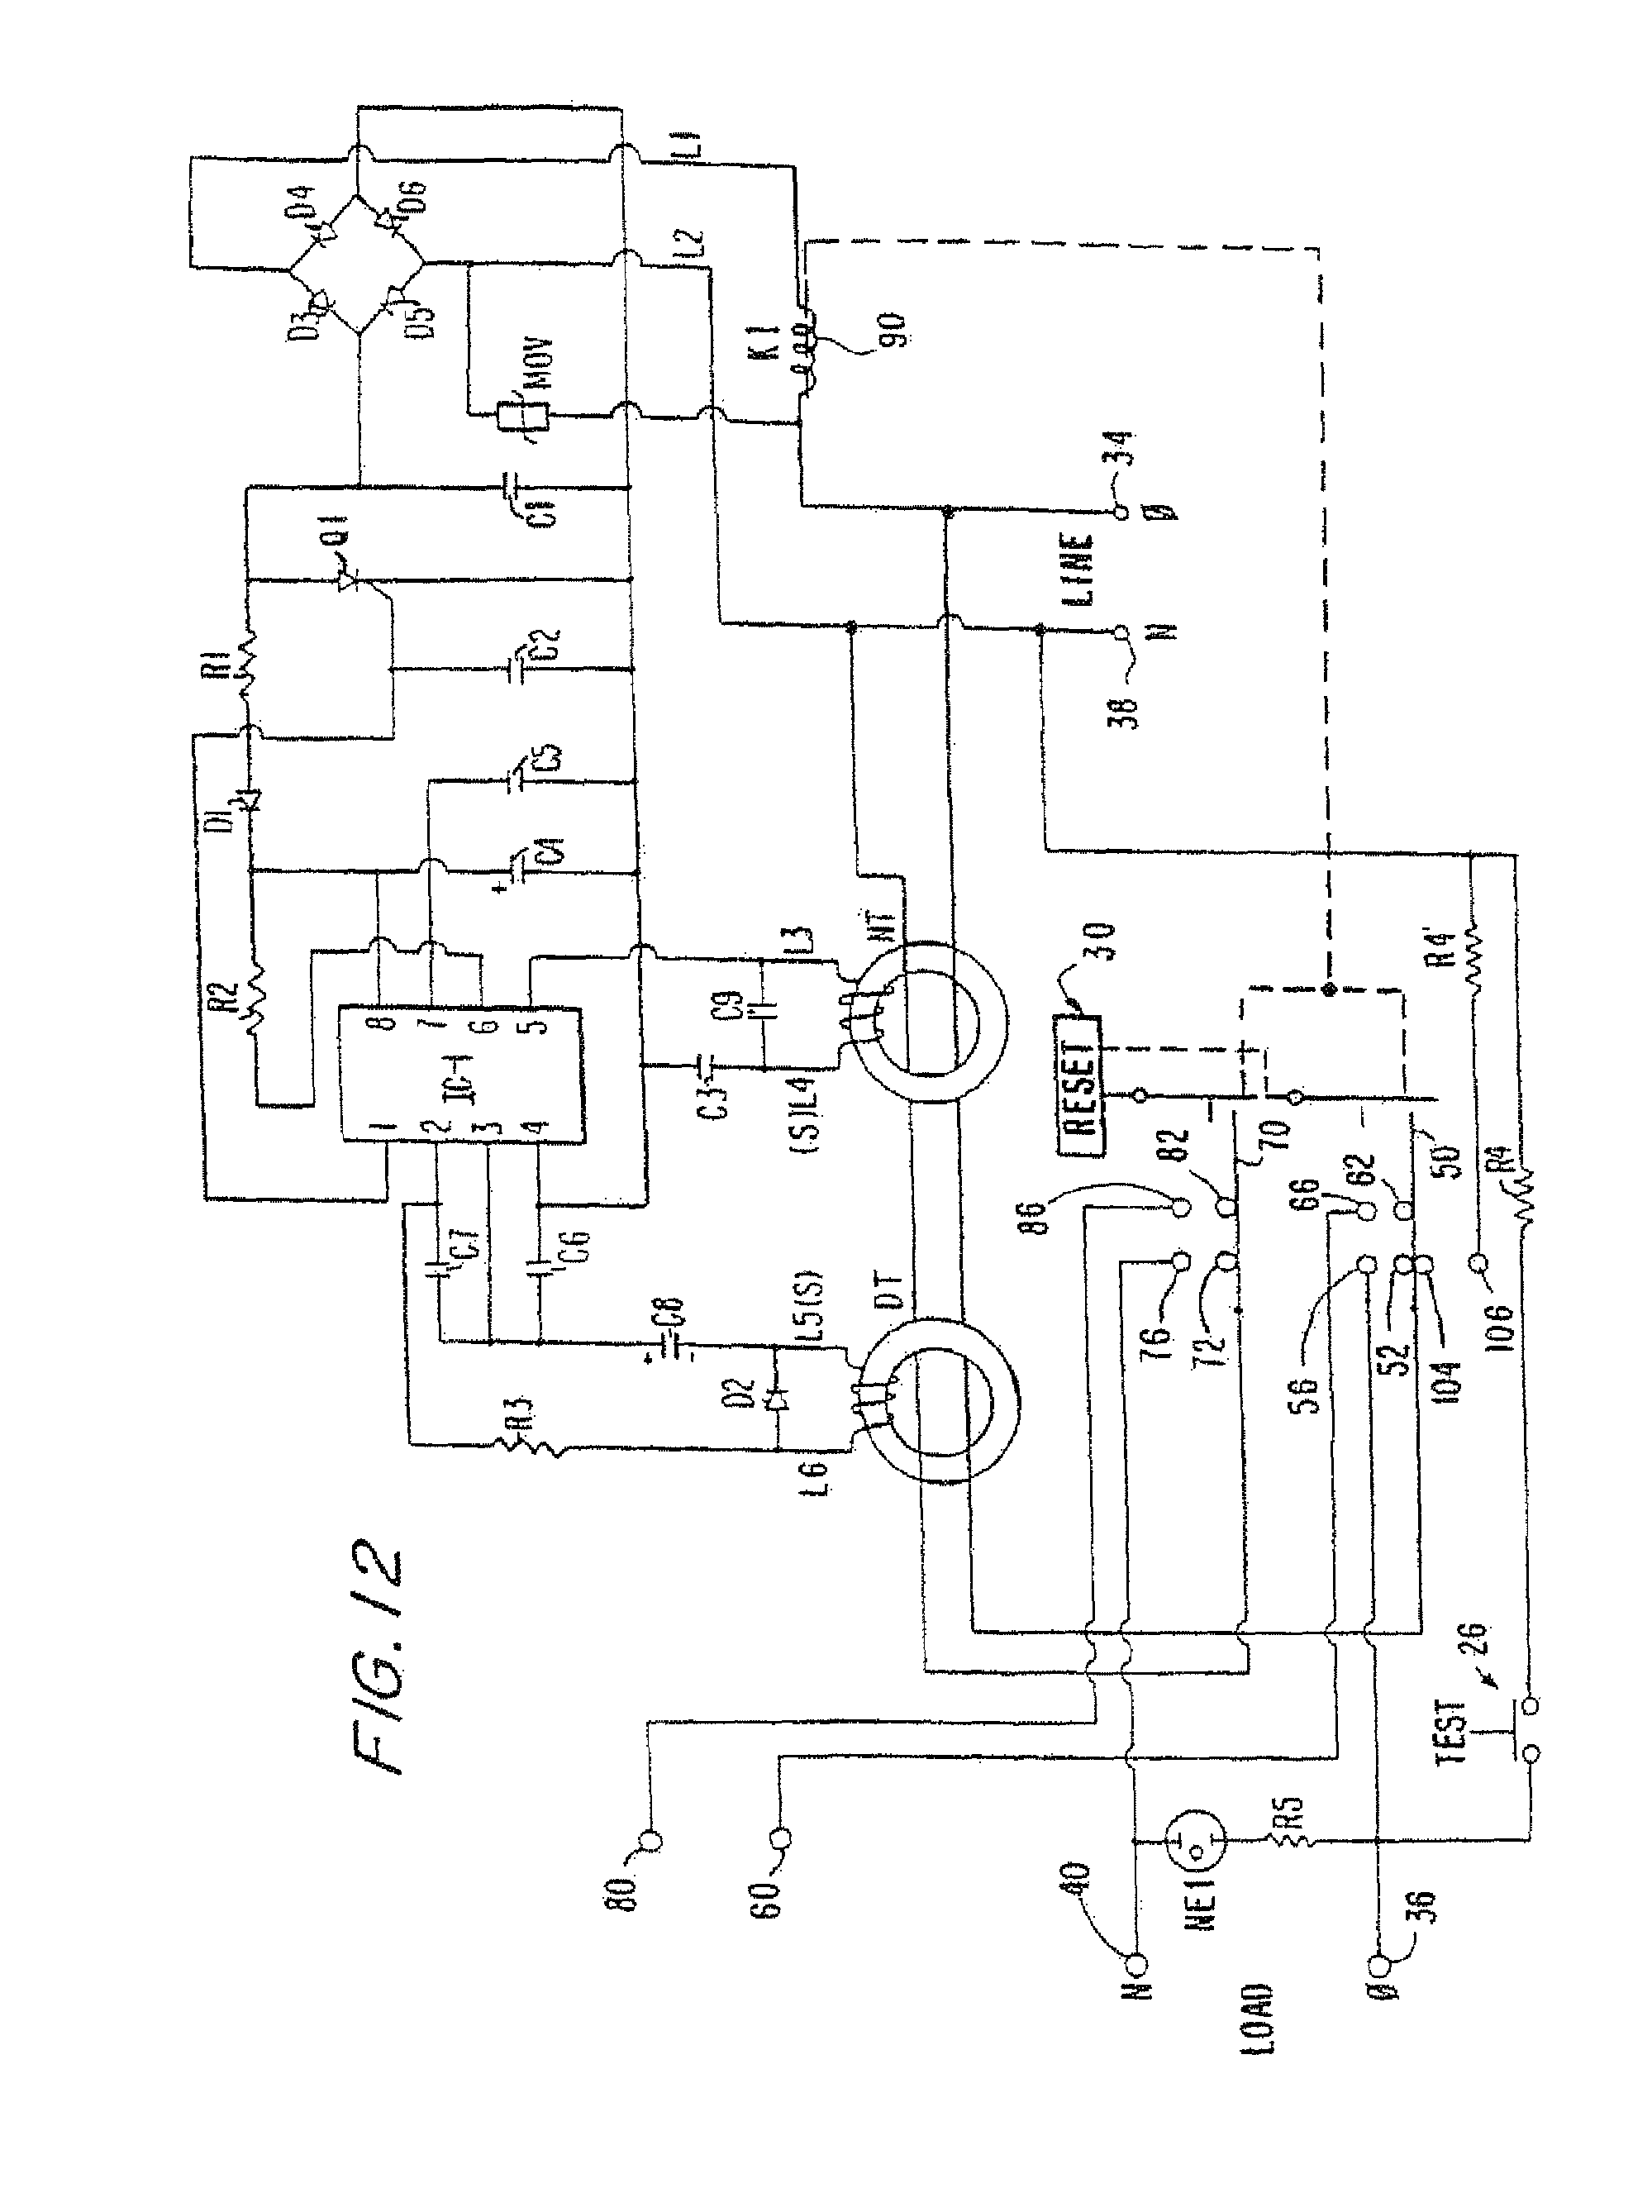 Patent Us8130480 Circuit Interrupting Device With Reset Lockout Latching Continuity Tester Diagrams Schematics Electronic Drawing